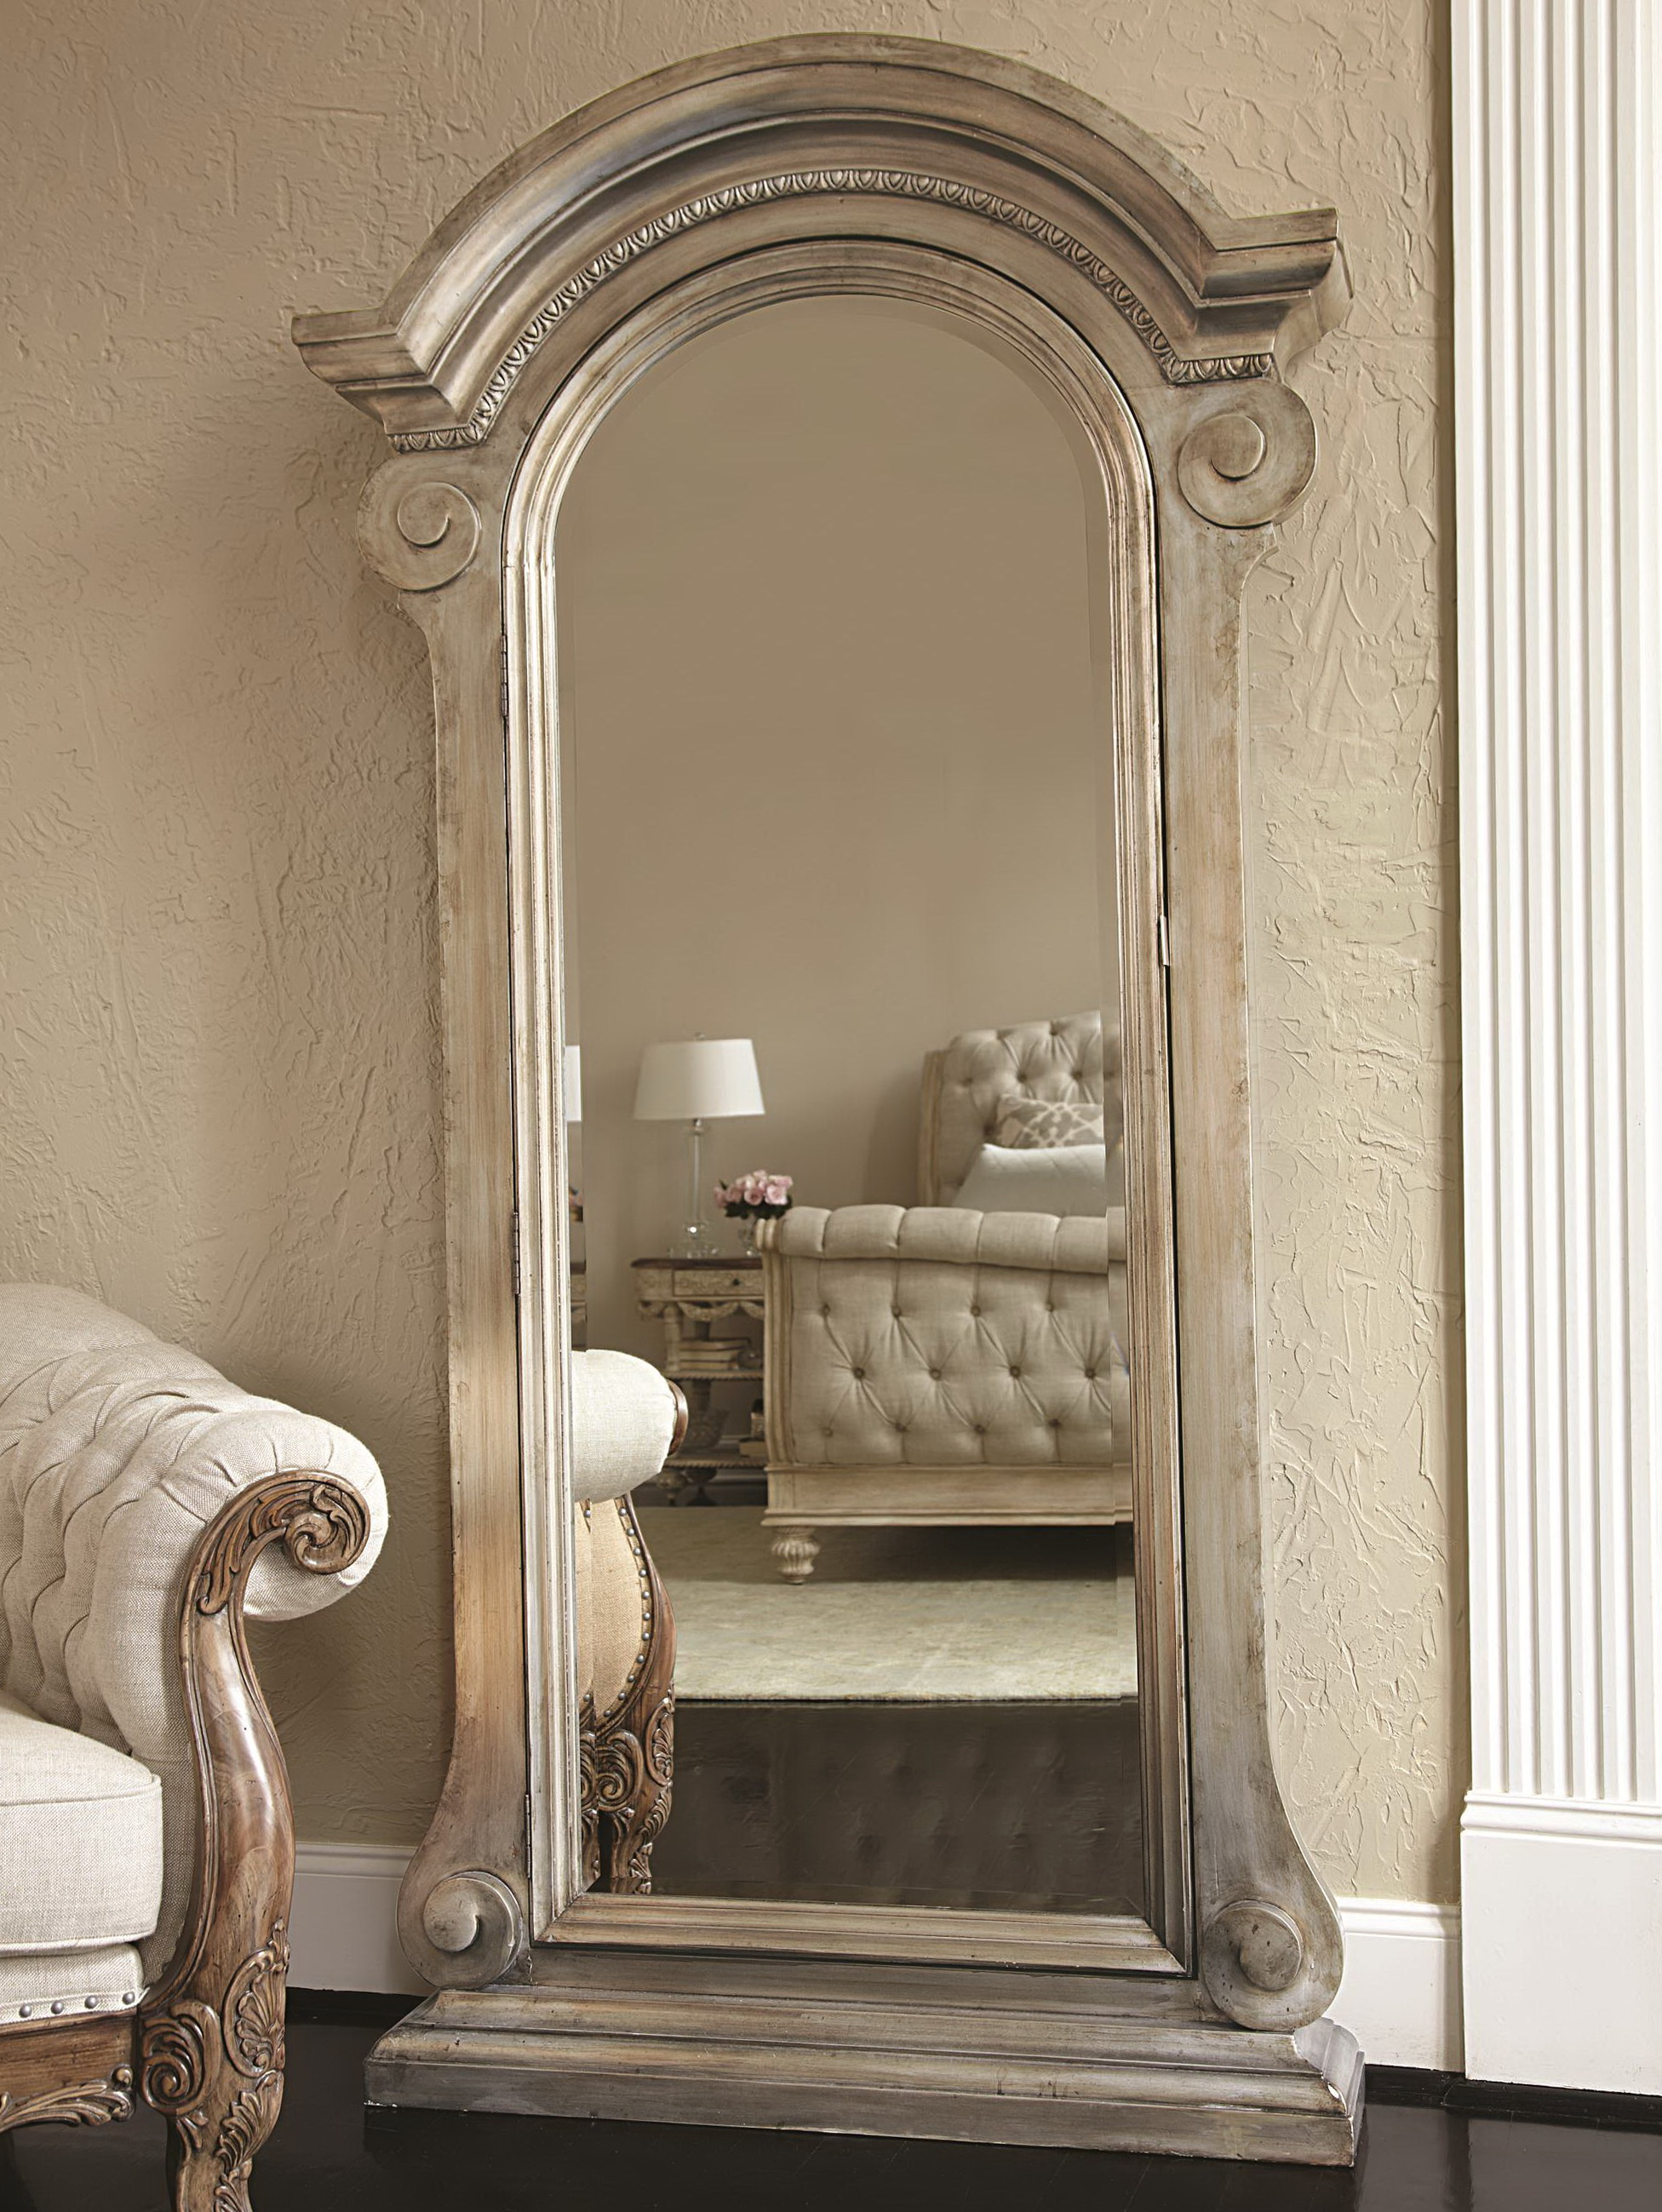 luxury wooden standing mirror jewelry armoire in silver with curve at top before the beige wall for living room decor ideas